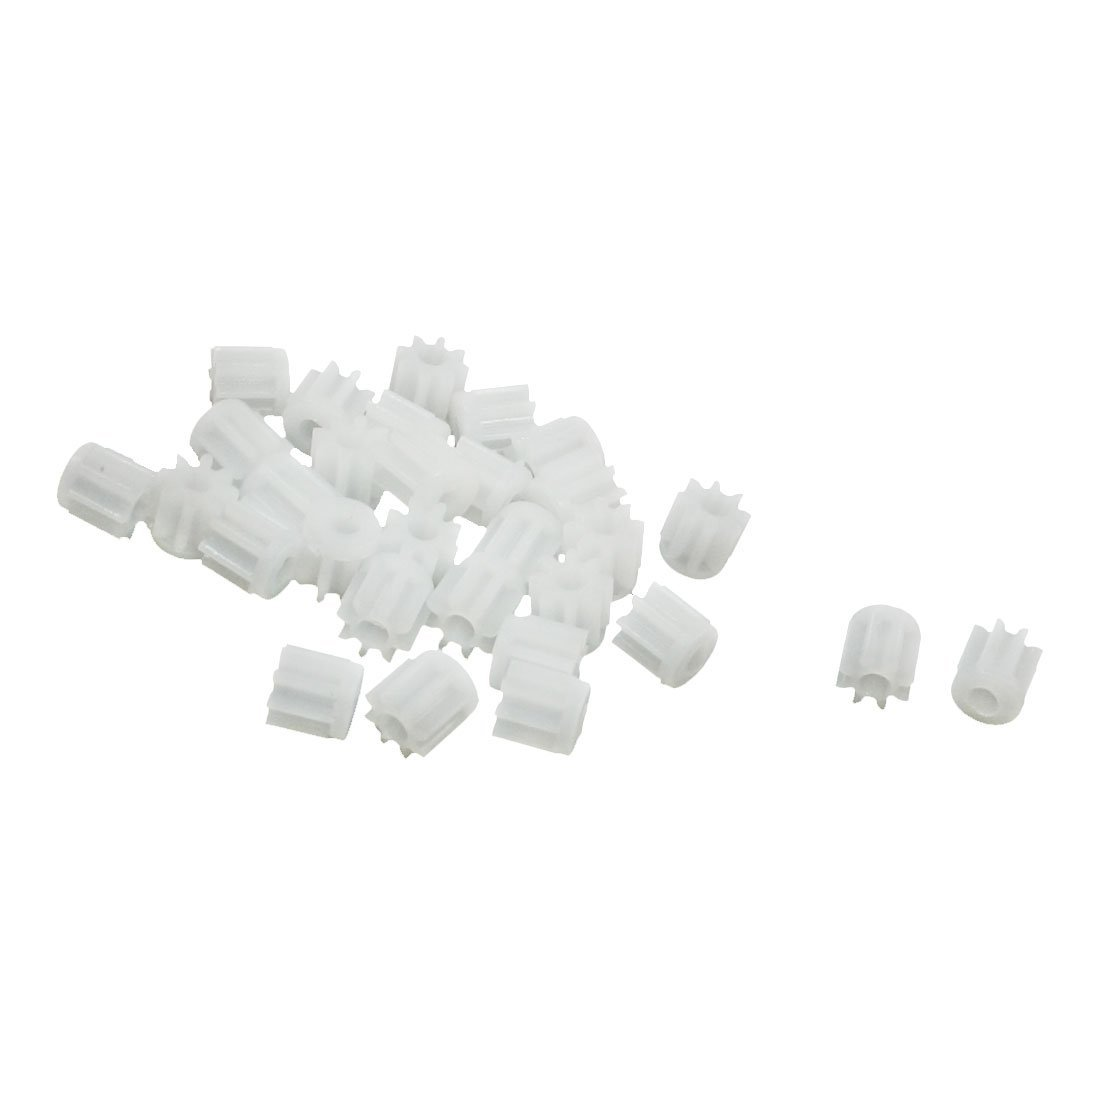 ABKM Hot 30Pcs 0.5 Modulus 8 Teeth Plastic Gear Cog For 2mm Toy Car Motor Shaft